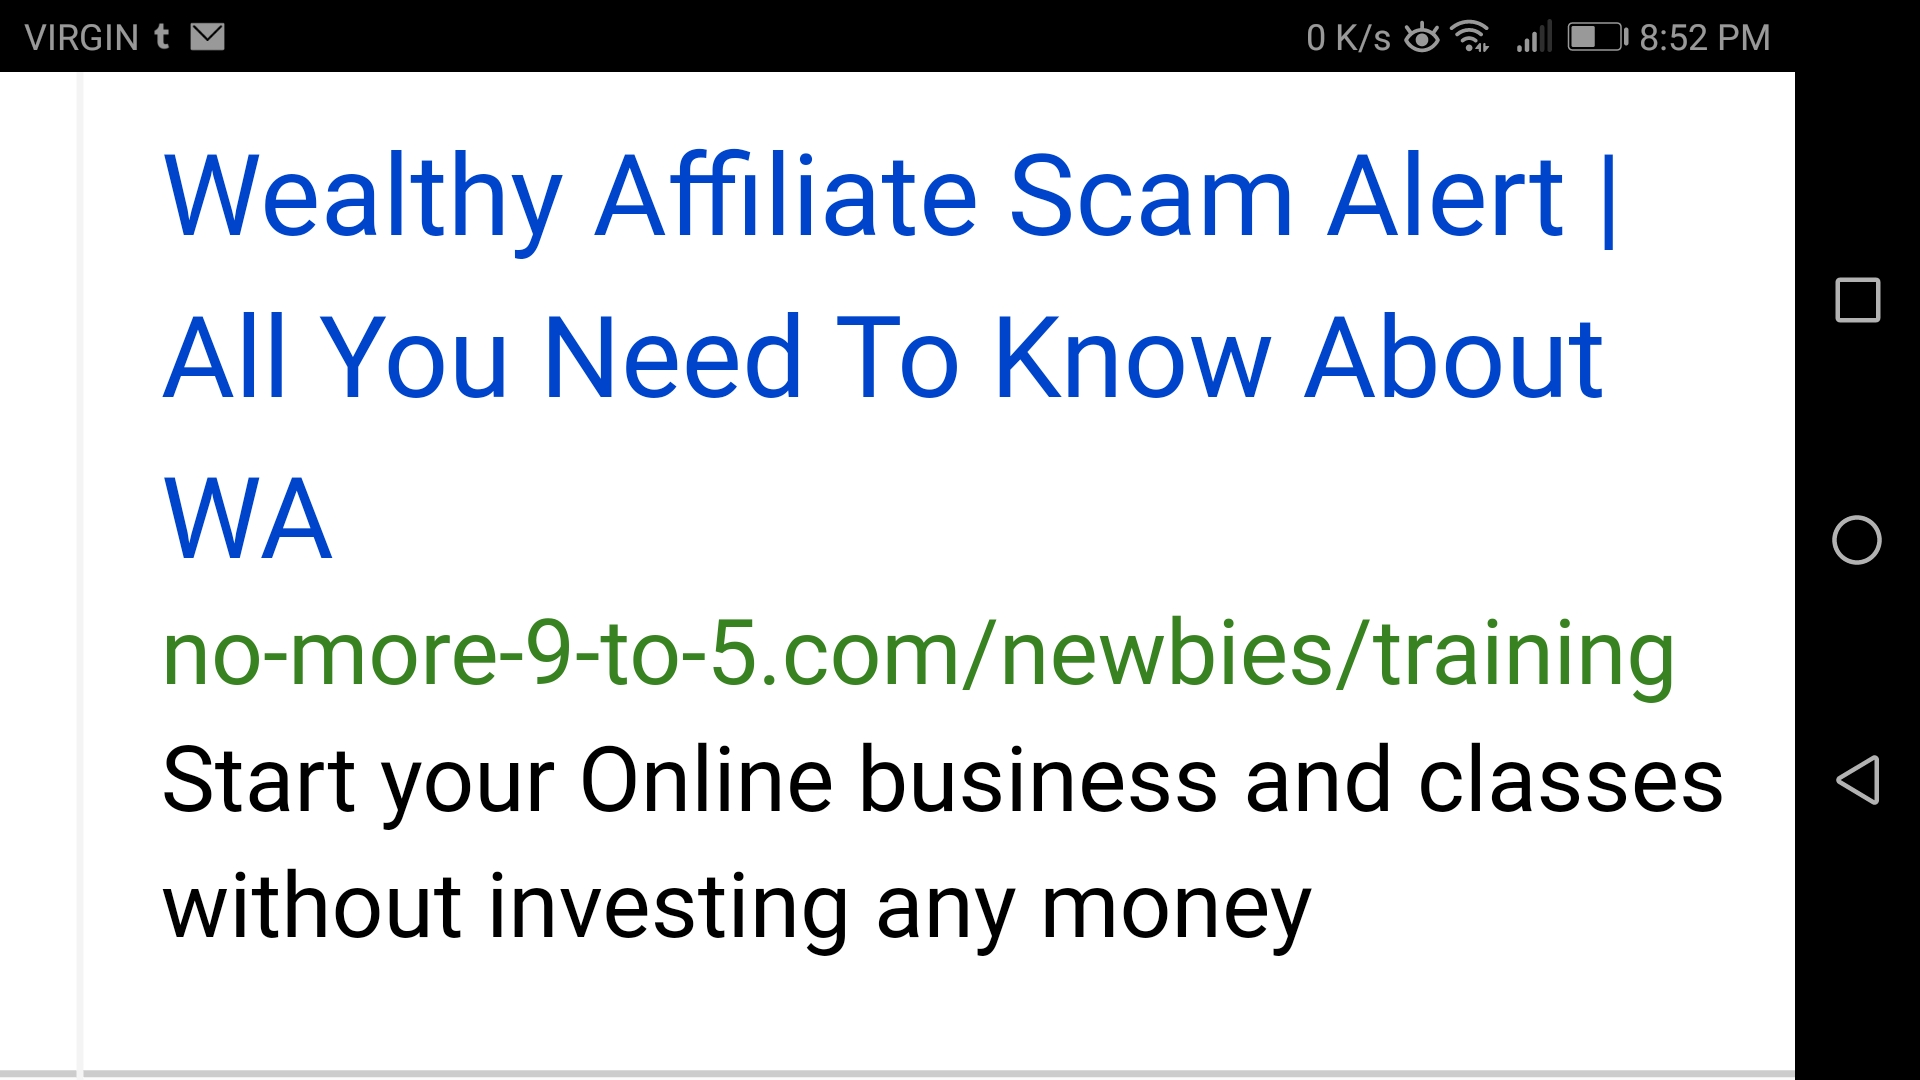 Wealthy Affiliate - no money down